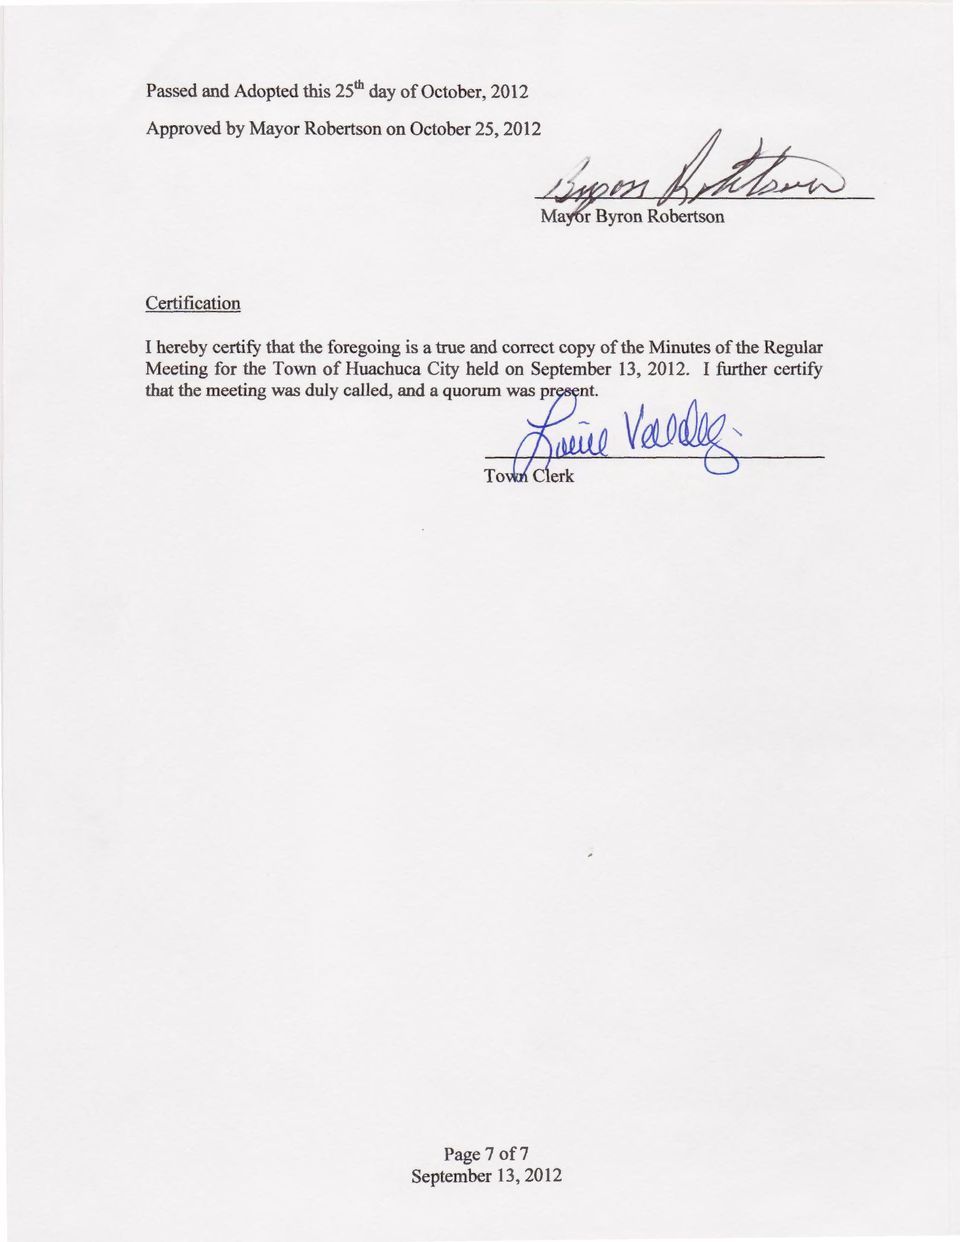 correct copy of the Minutes of the Regular Meeting for the Town of Huachuca City held